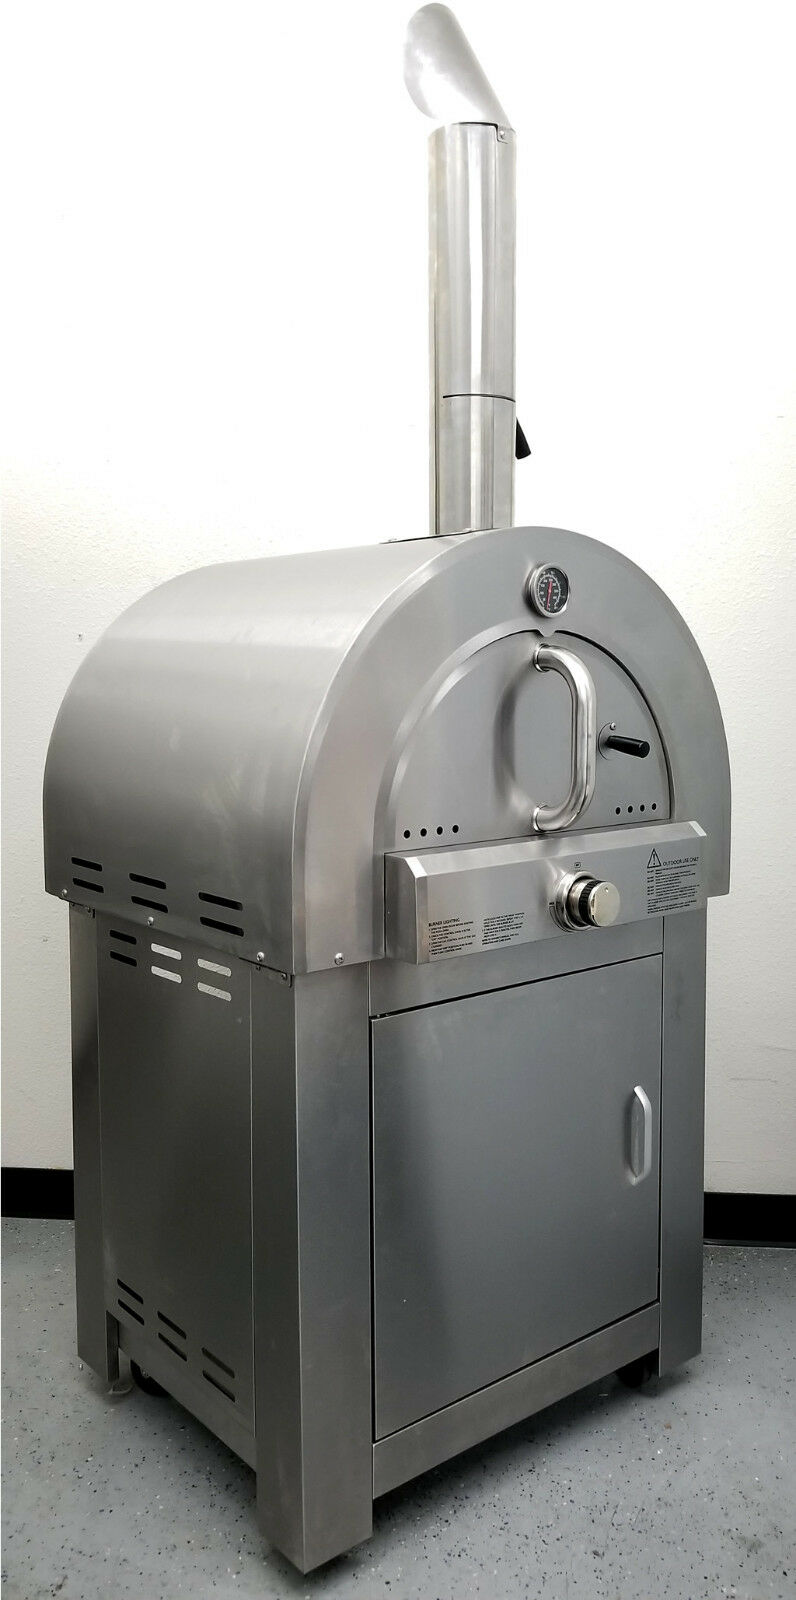 New Stainless Steel Outdoor LPG Propane Gas Pizza Oven Range